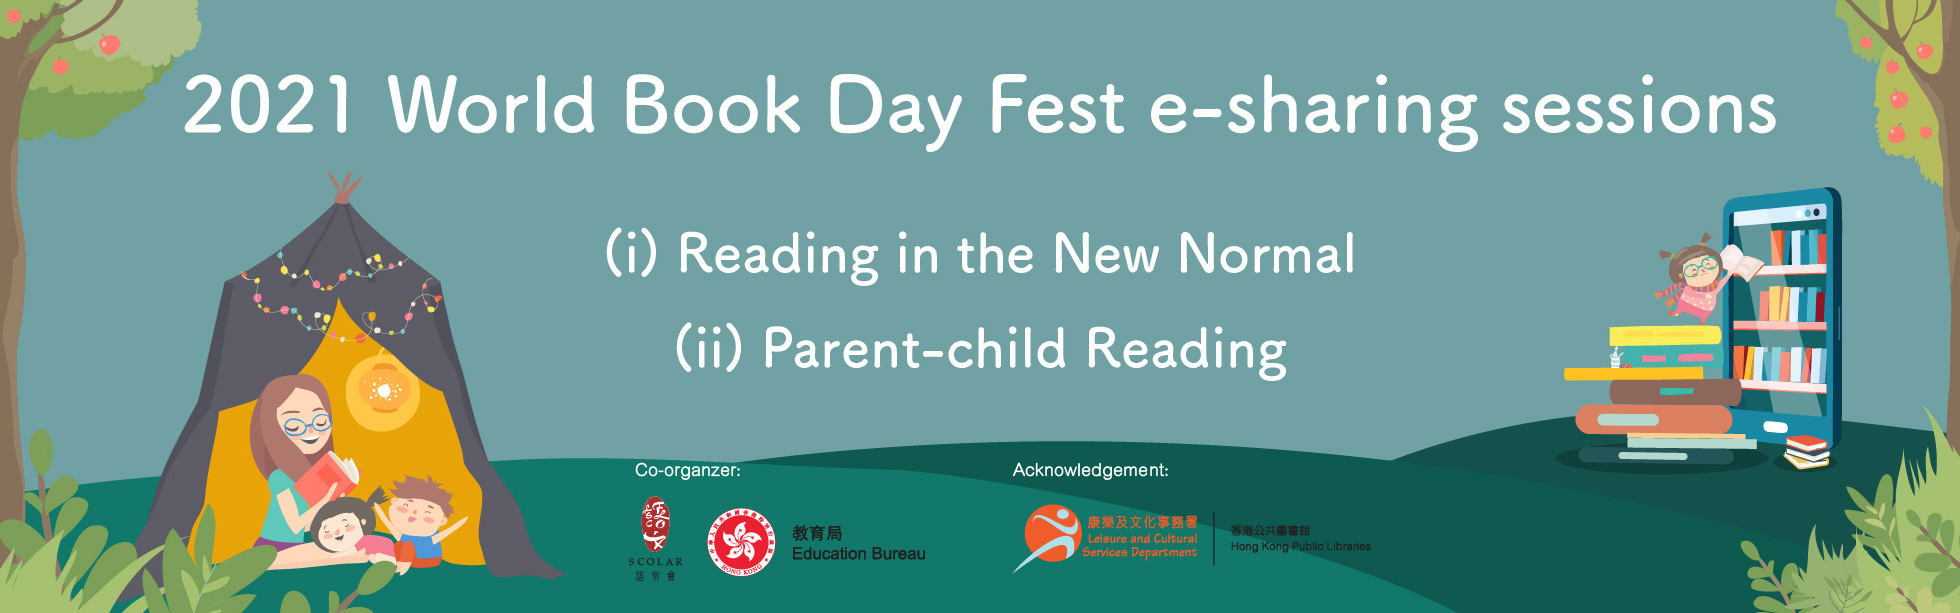 2021 World Book Day Fest e-sharing sessions